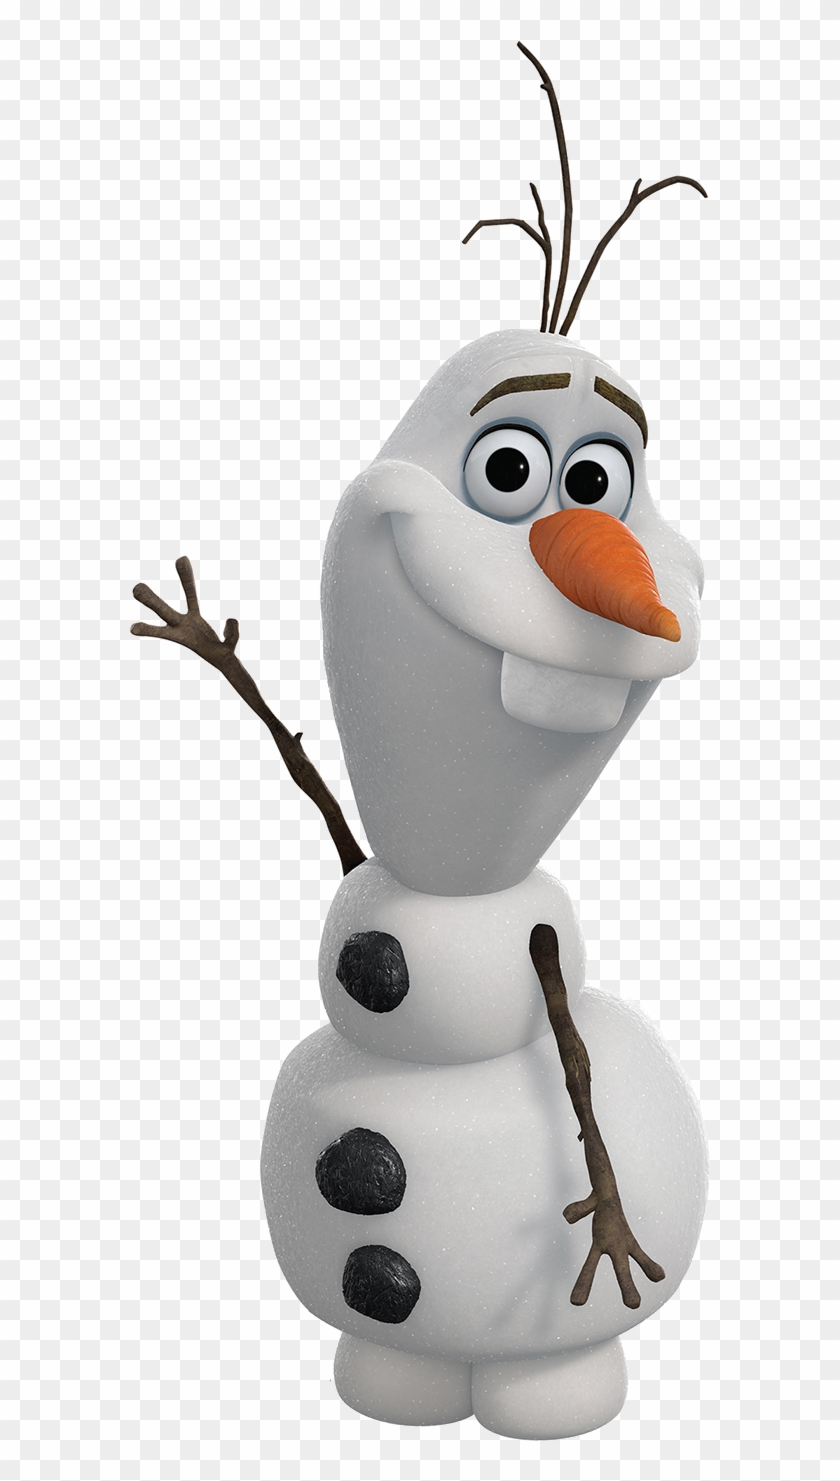 Olaf Png Hd - Frozen Olaf Png #915287